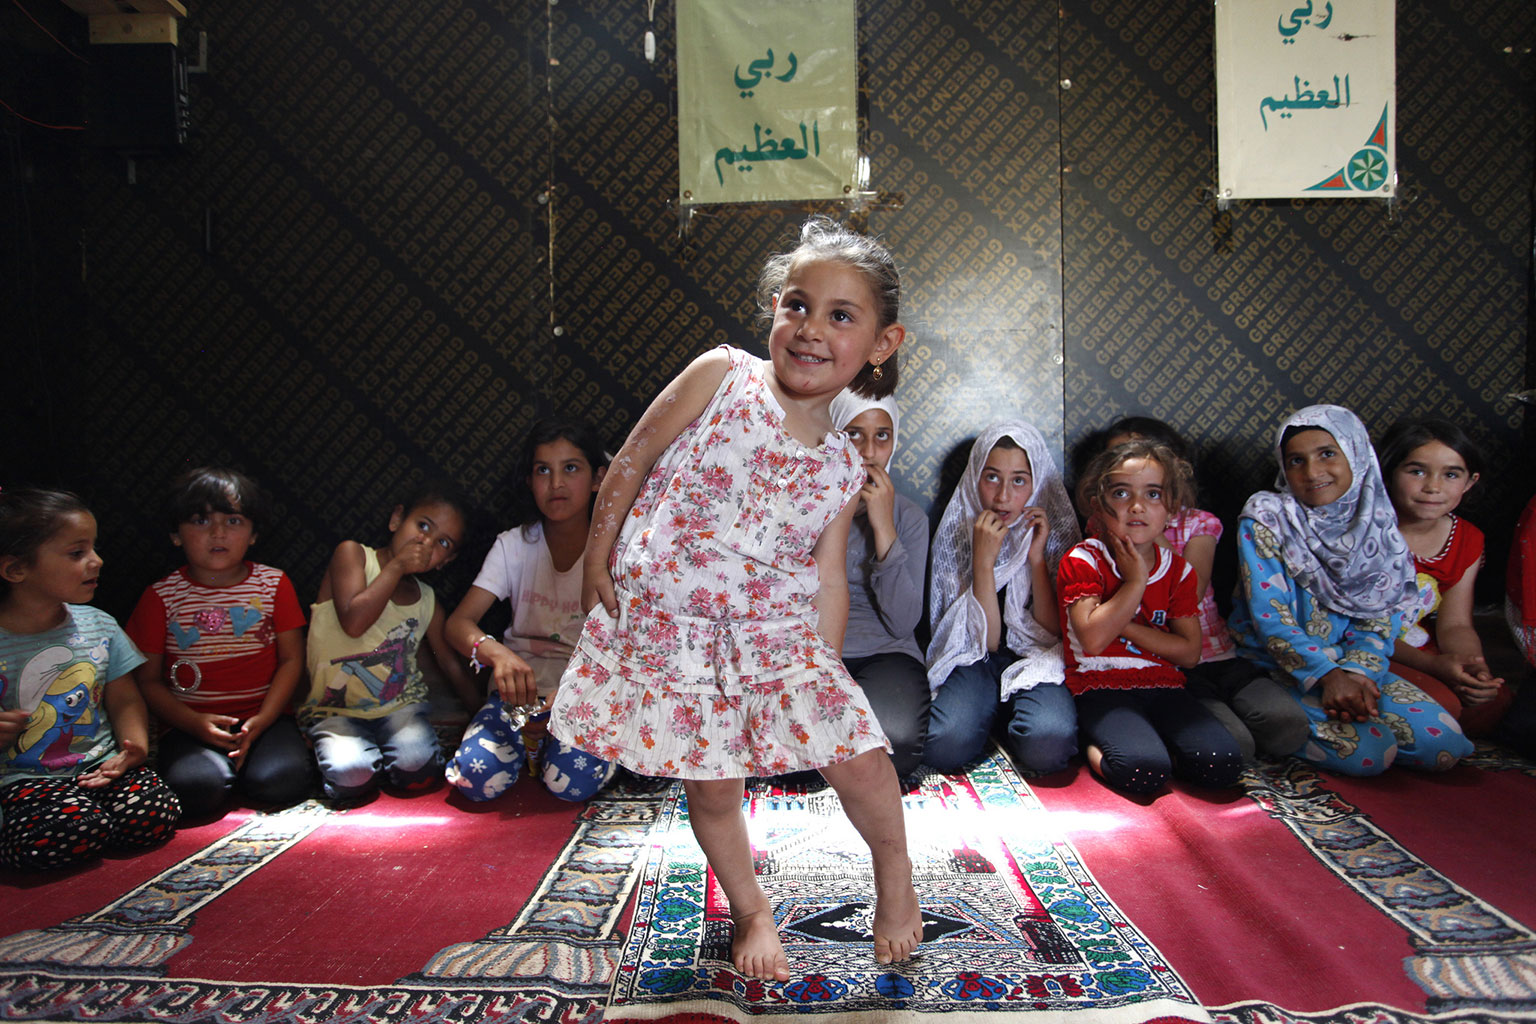 Syrian refugee children participate in a religion class. Photographed in the Ketermaya informal tented settlement (ITS), outside Beirut, Lebanon on June 1, 2014. (Courtesy Dominic Chavez/World Bank)